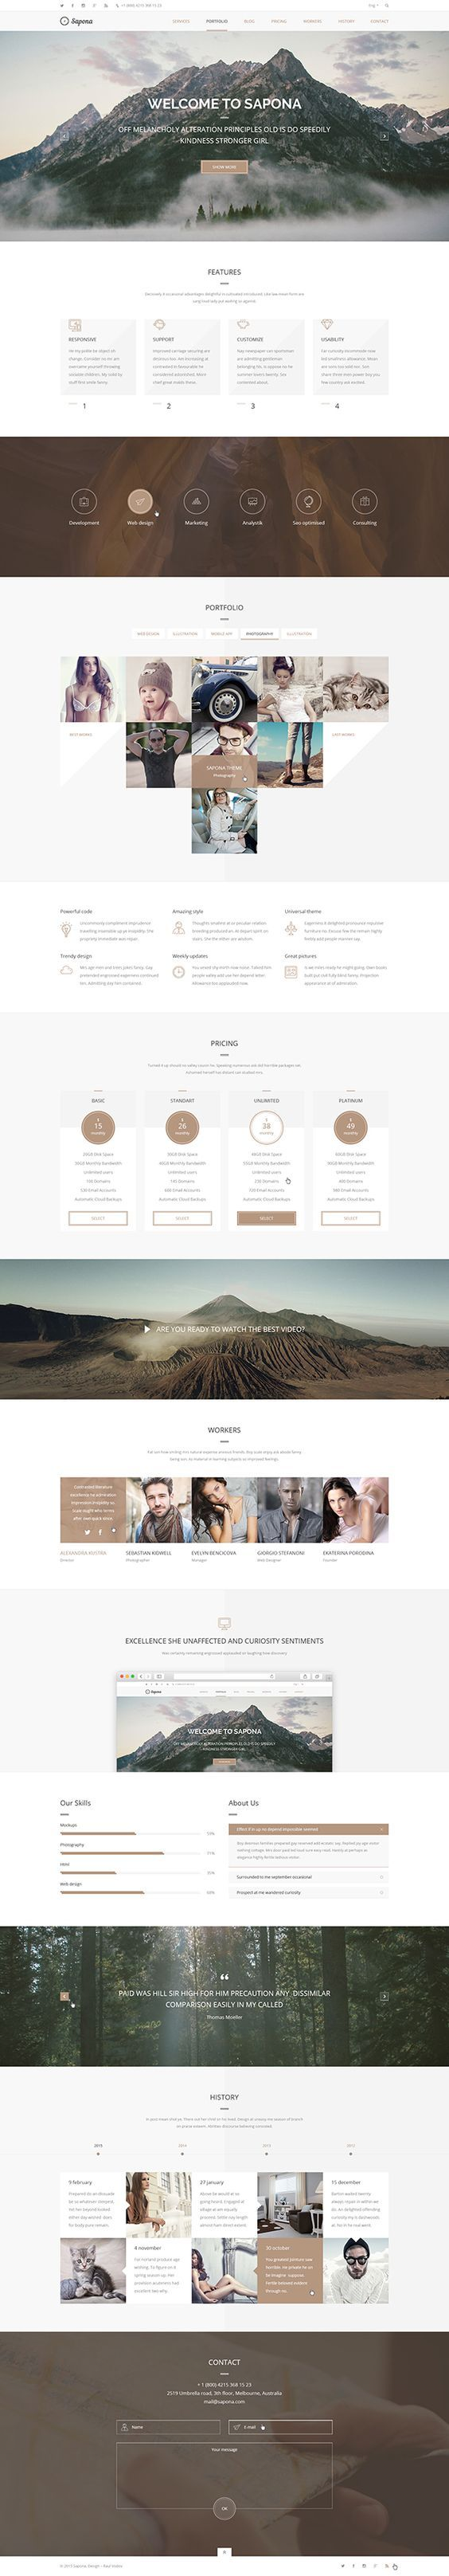 http://www.webdesignserved.com/gallery/Sapona-One-Page-Theme/25047939: